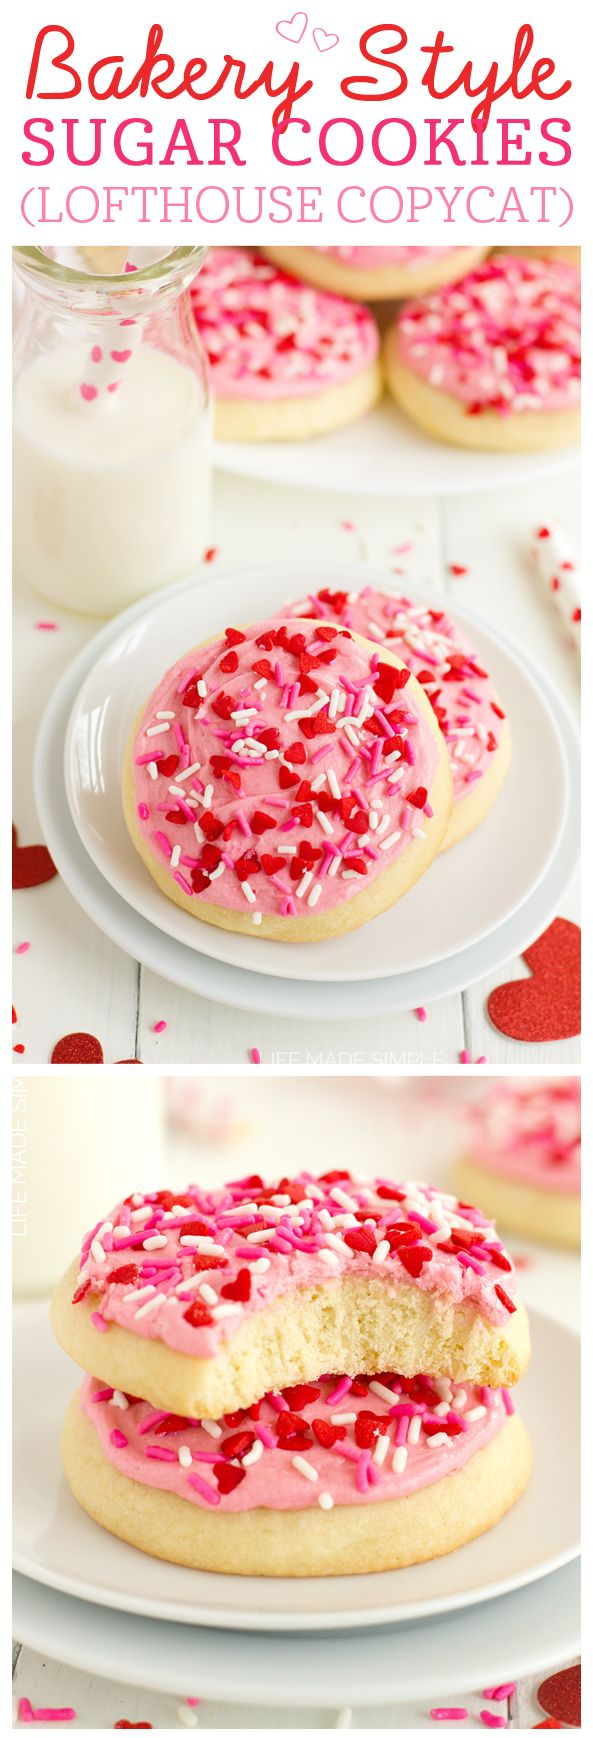 Bakery Style Sugar Cookies (Lofthouse Copycat) | Life Made Simple